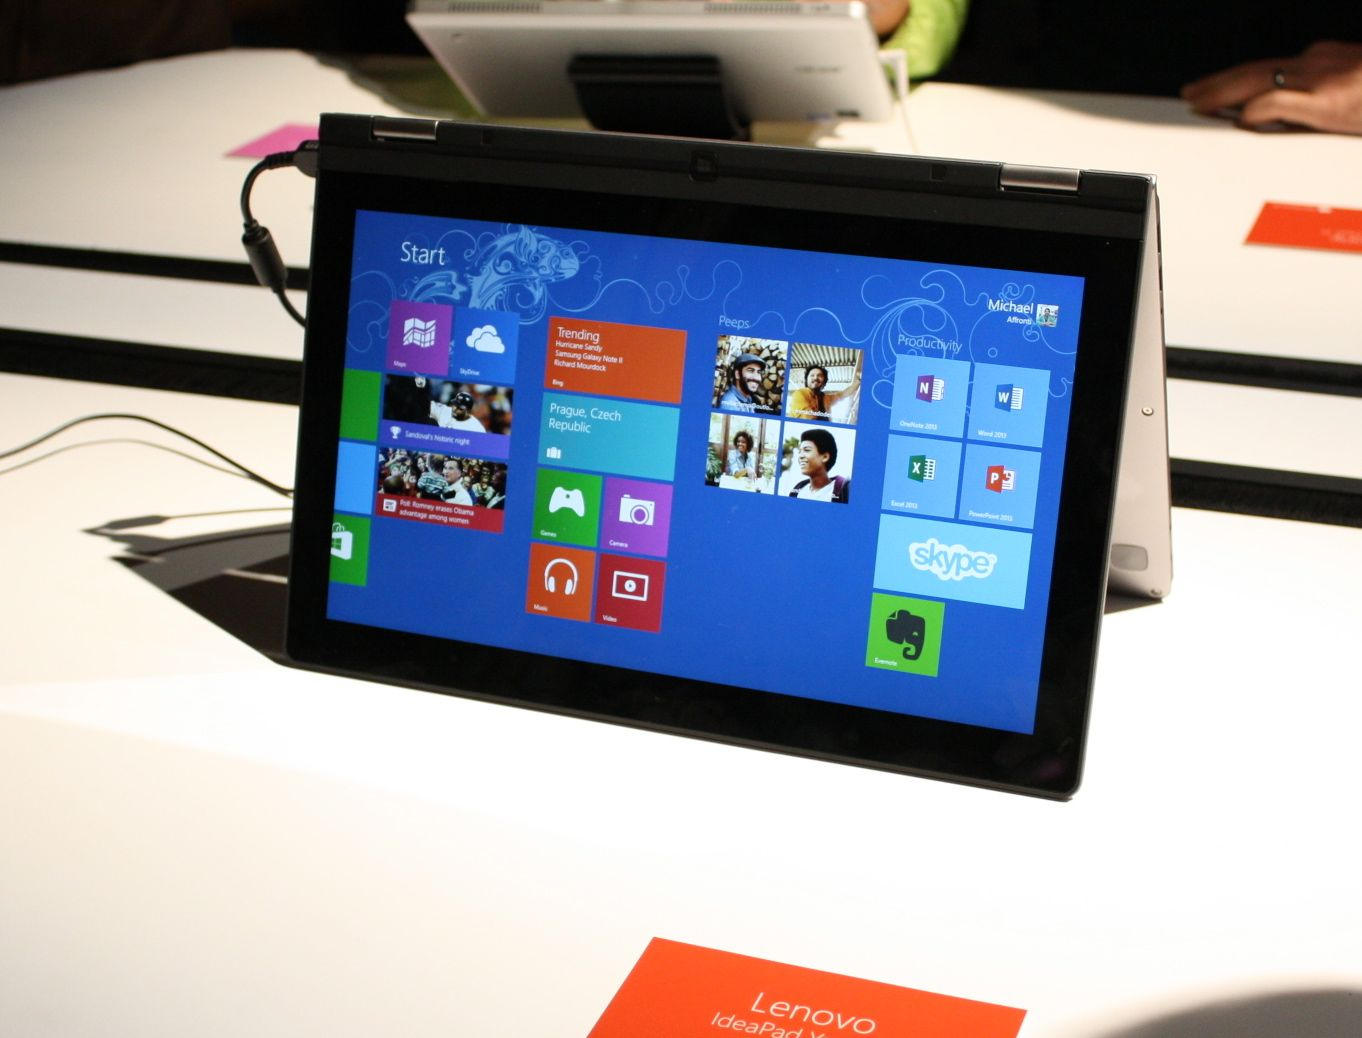 The Lenovo IdeaPad Yoga, which we first saw nearly a year ago, in its final form.